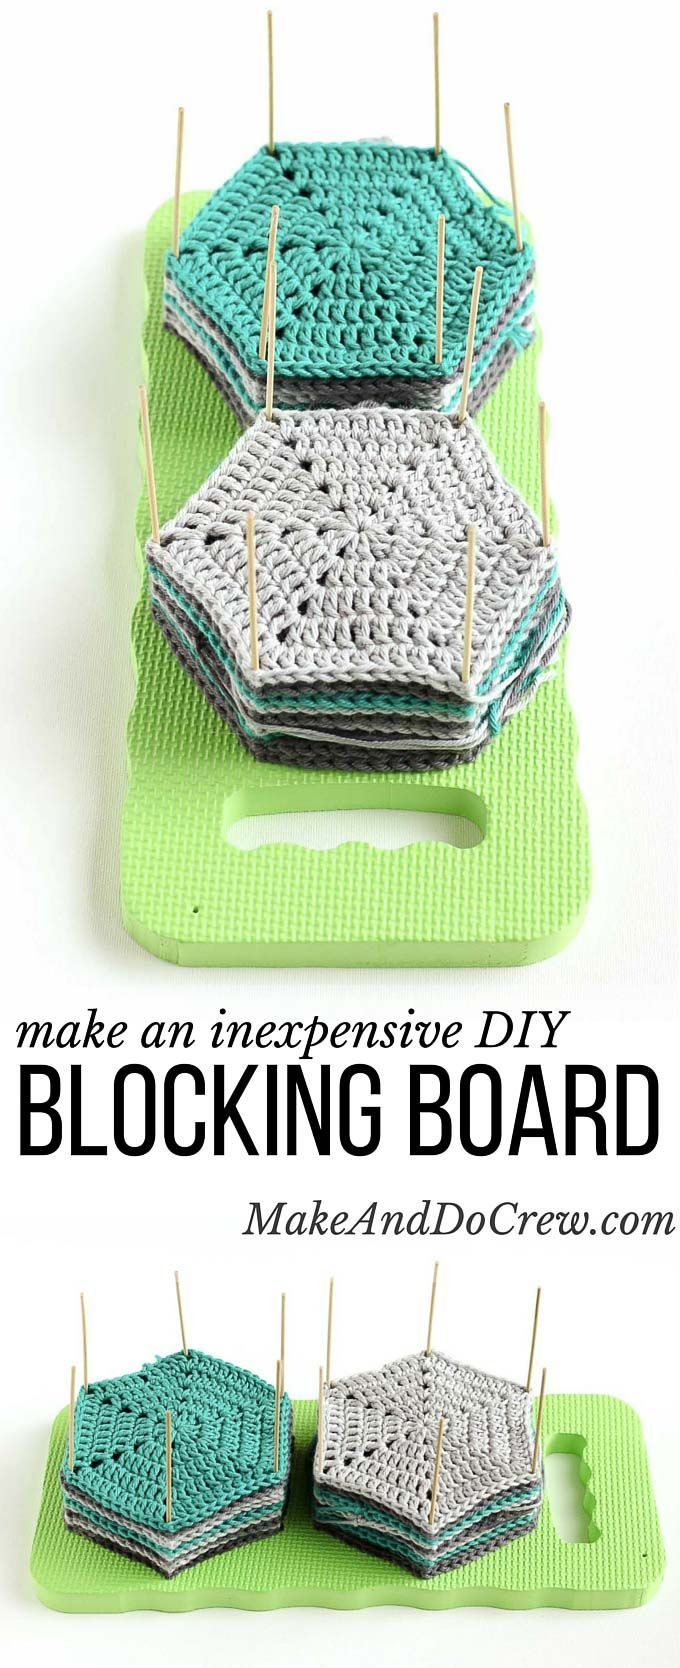 Learn how to block crochet or knit hexagons or granny squares with this incredibly easy and inexpensive DIY blocking board (made from a garden kneeling pad!) Click for full tutorial.   http://MakeAndDoCrew.com